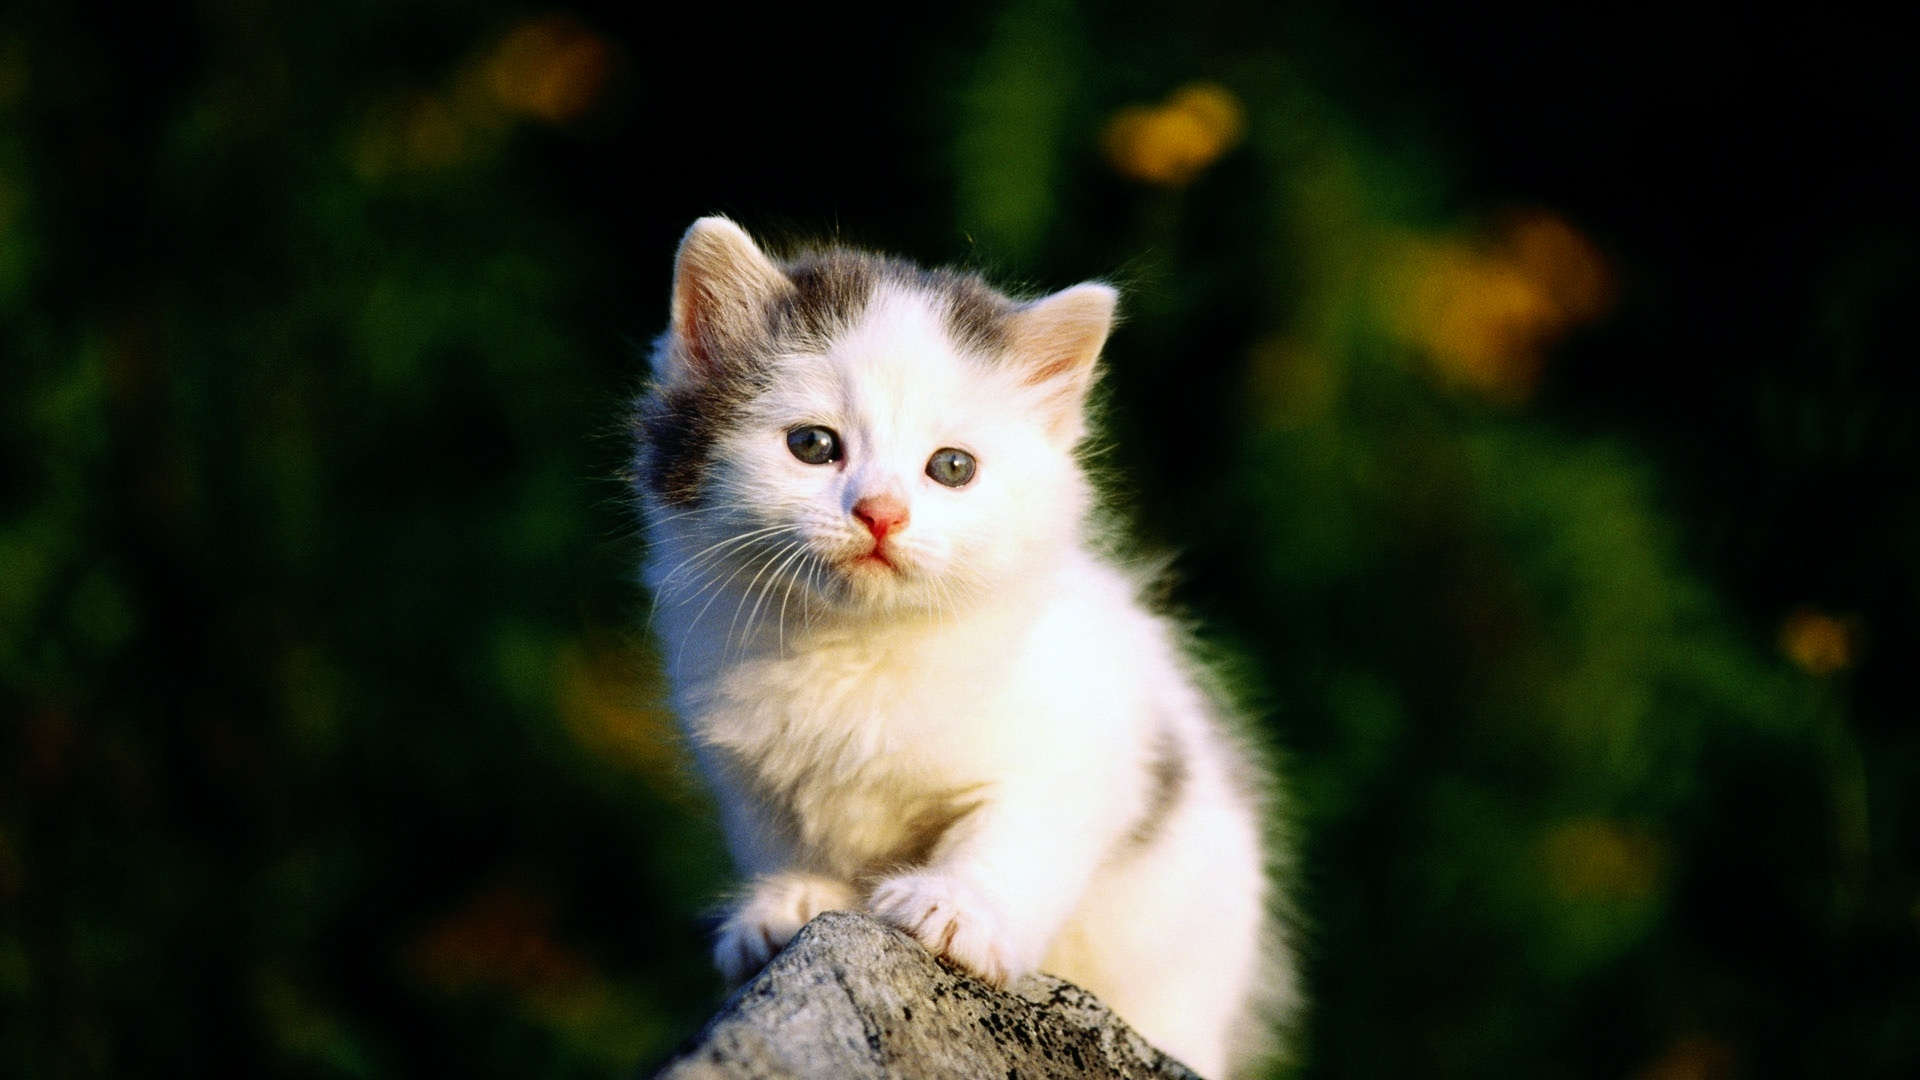 Hd wallpaper cat - Download Sweet Cat Hd Wallpapers From Hd Photo Gallery